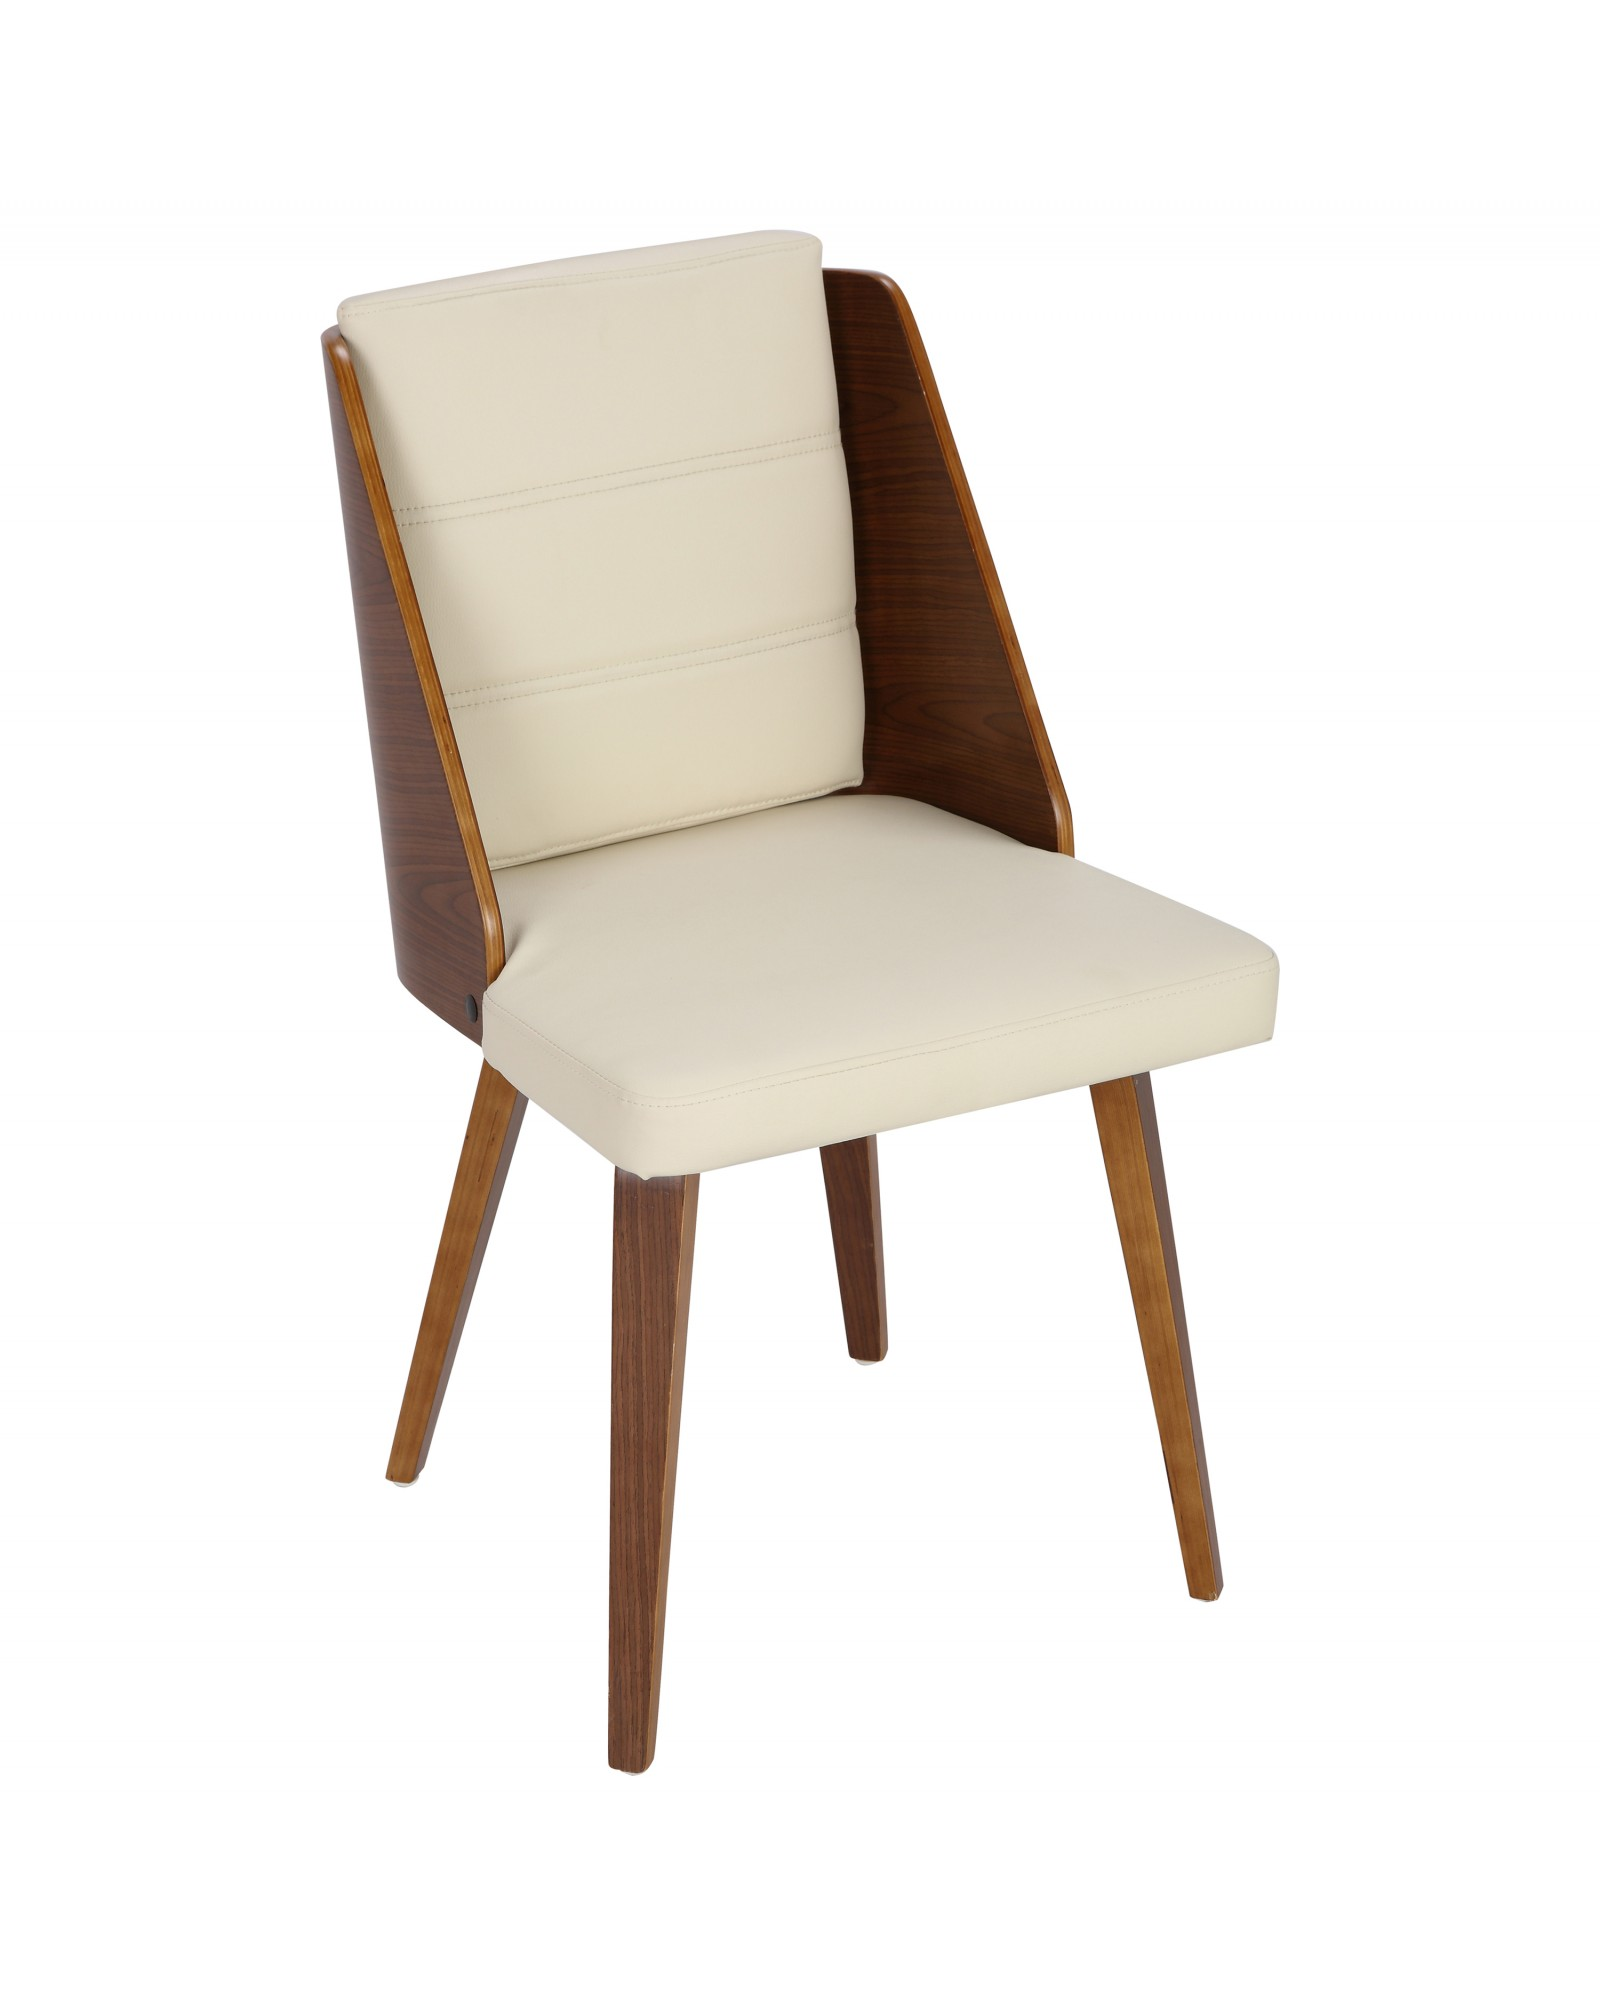 Galanti Mid-Century Modern Dining/Accent Chair in Walnut and Cream Faux Leather - Set of 2